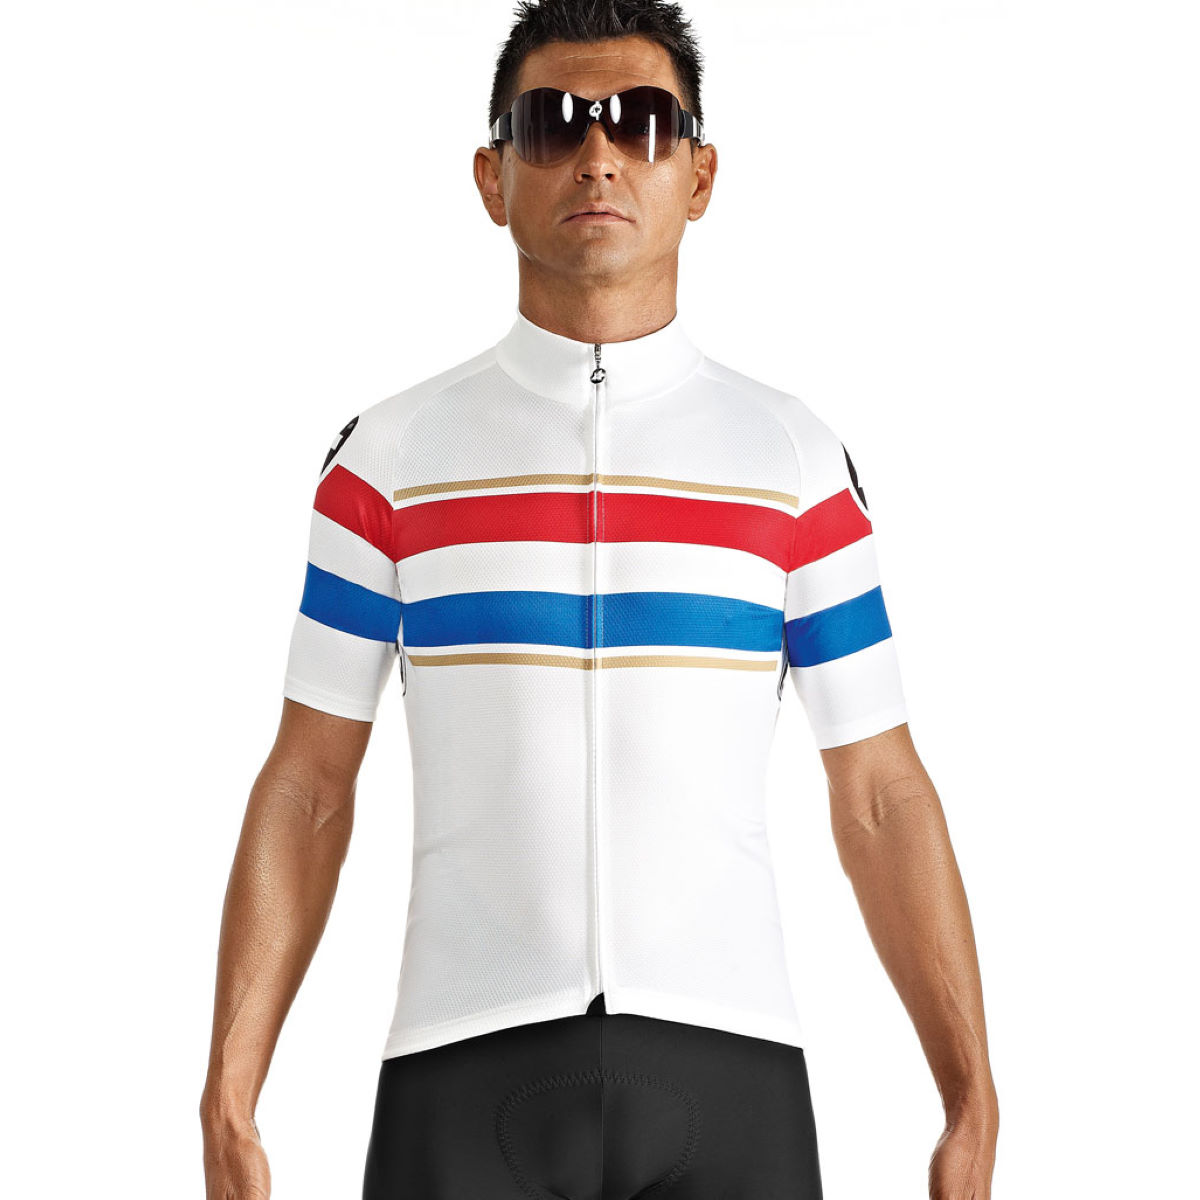 Maillot Assos SS.neoPro Pays-Bas - XS Netherlands Maillots